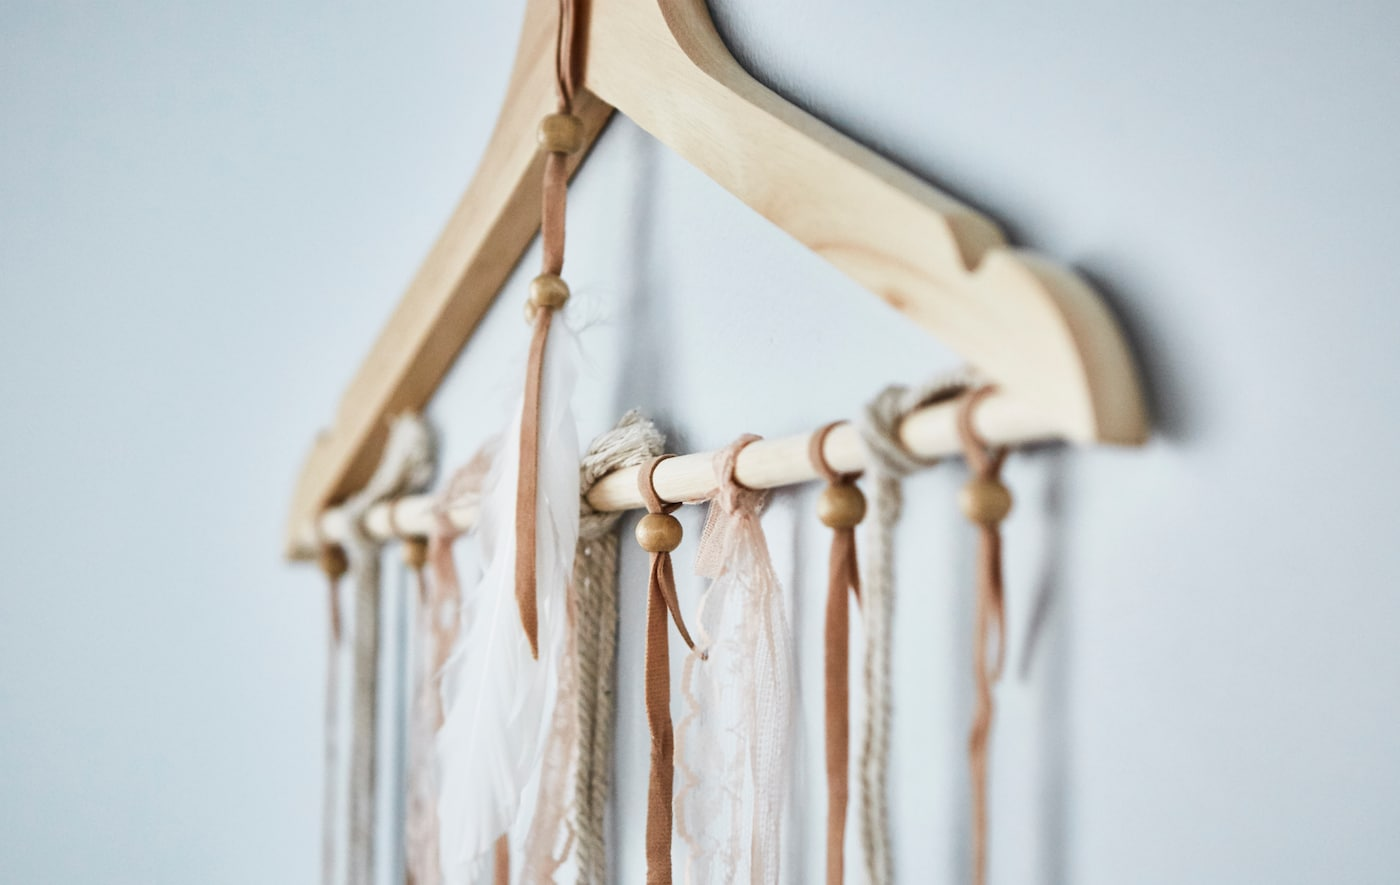 Want to organize your newspapers? Try folding them over a hanger! IKEA offers a wide selection of hangers such as our classic BUMERANG hanger in solid hardwood.